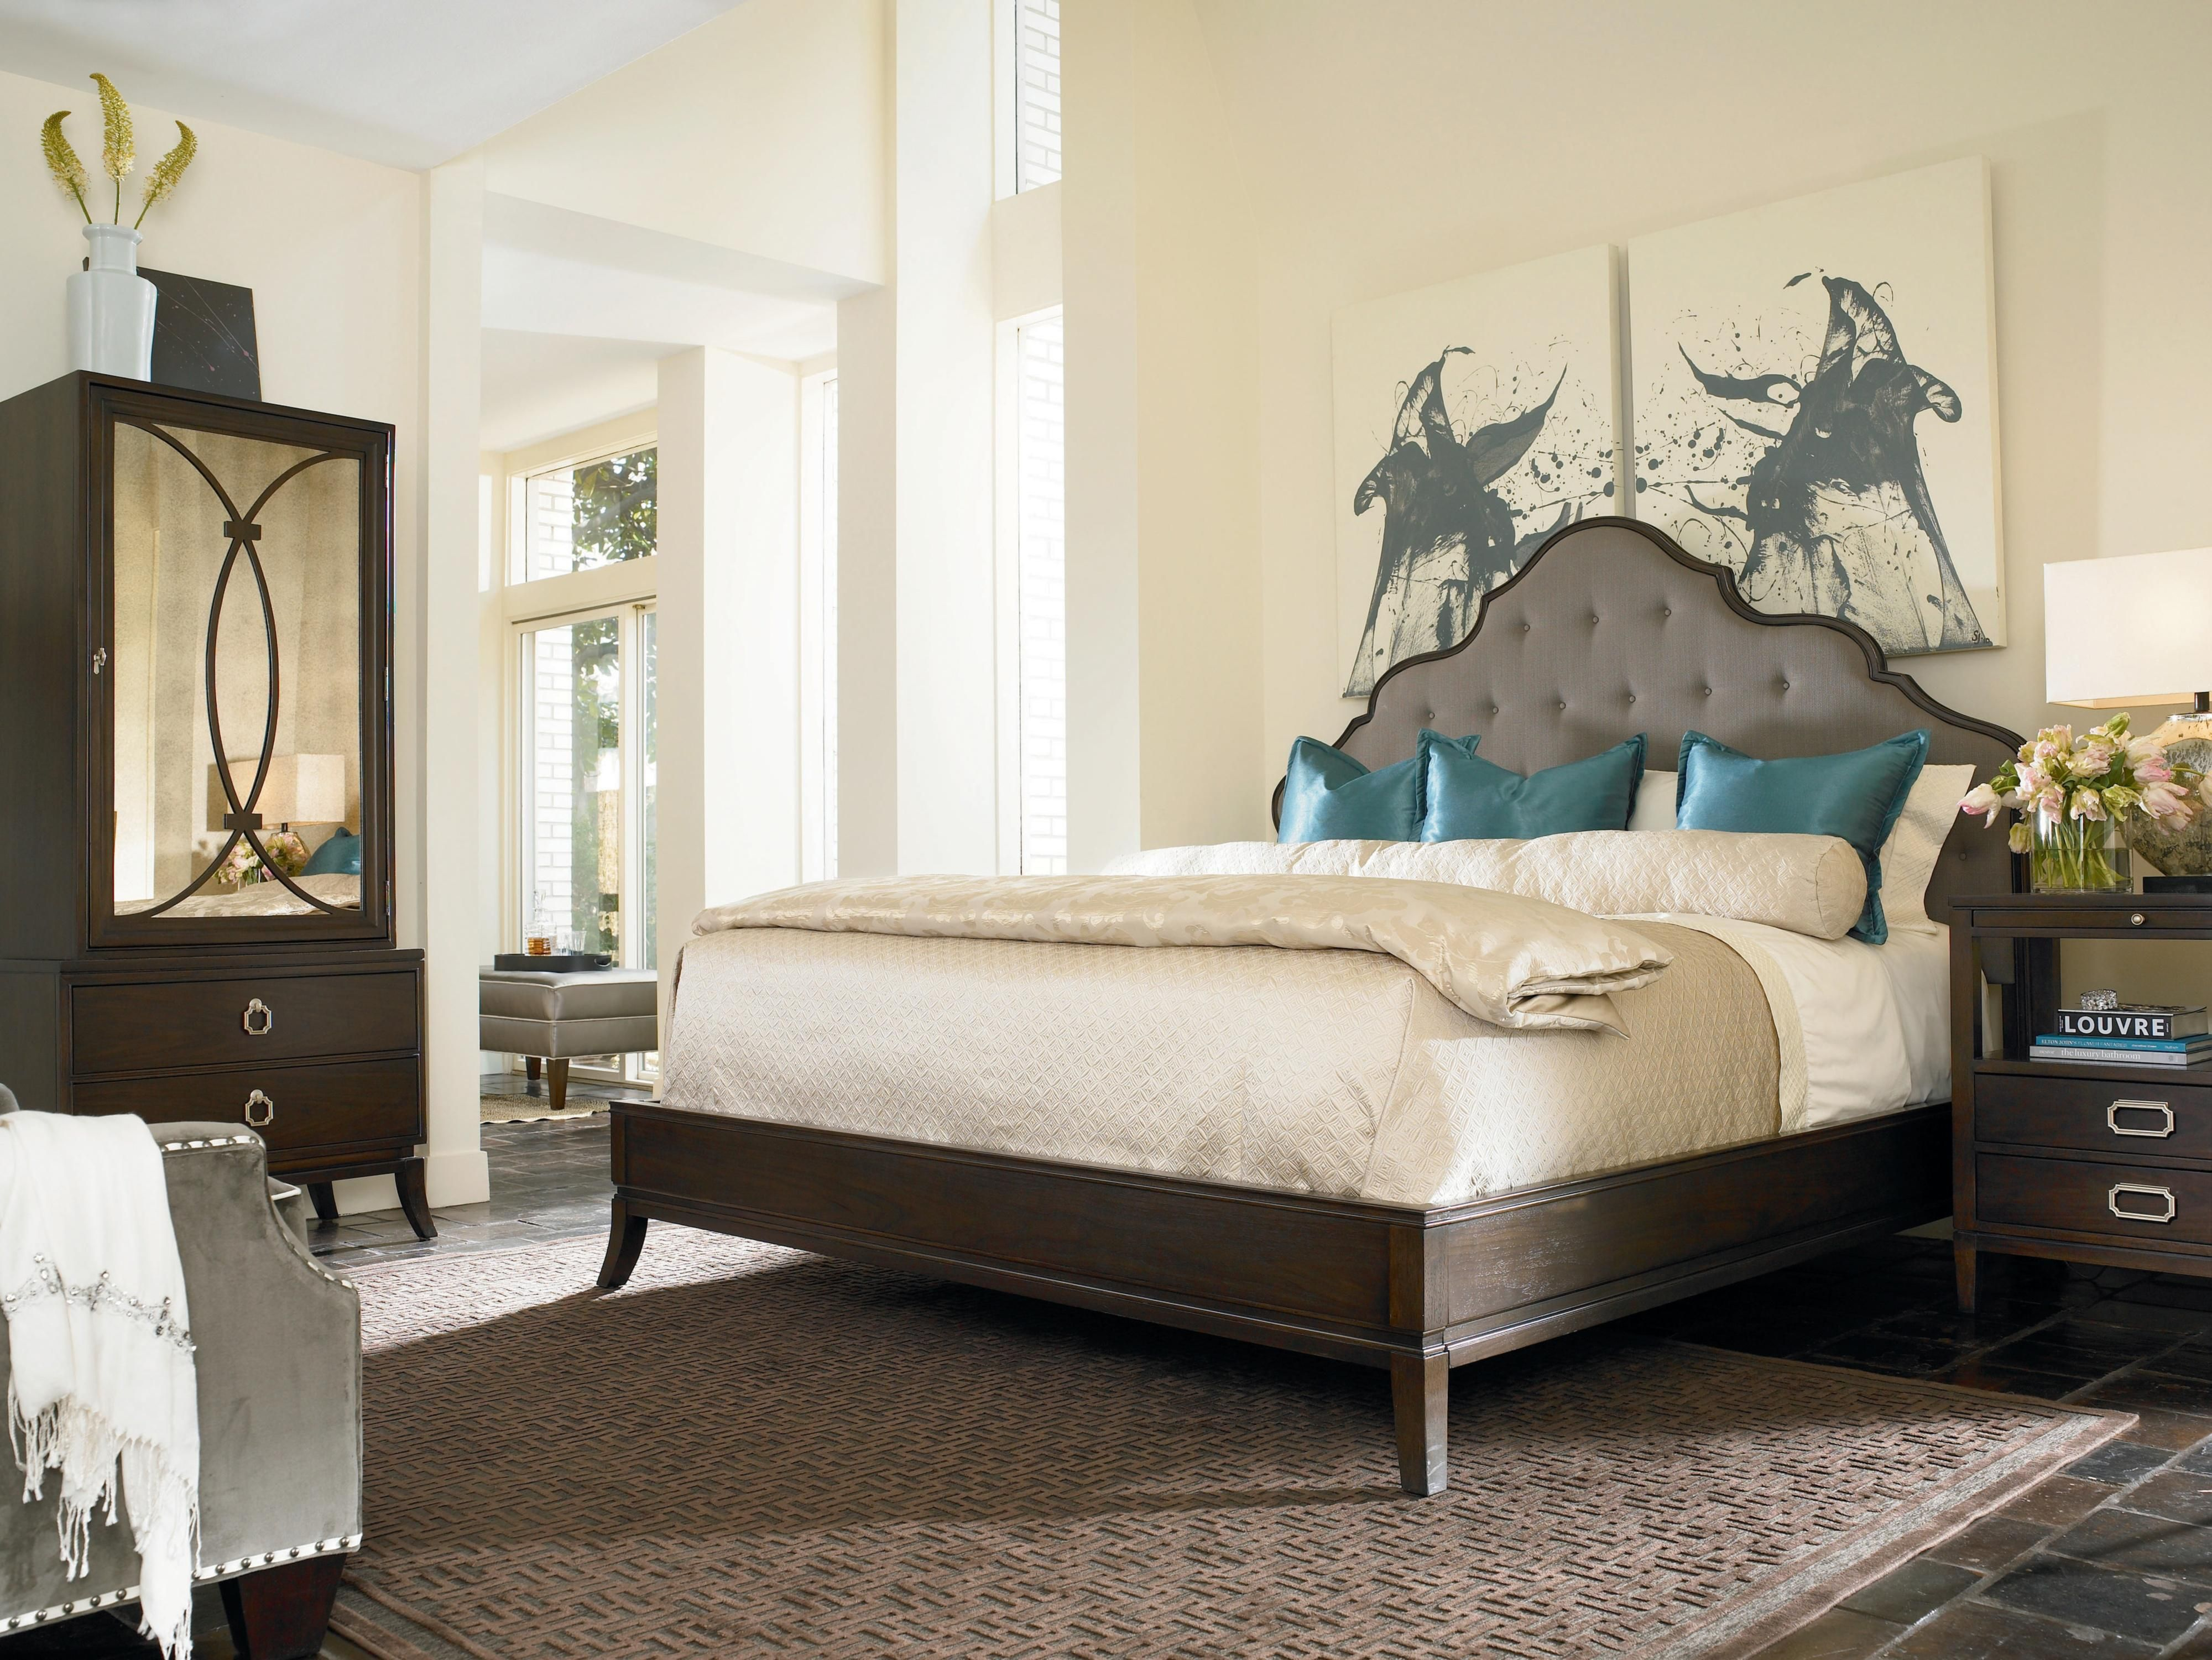 This Upholstered Bed Is Sure To Bring A Touch Of Elegance Into Your Bedroom